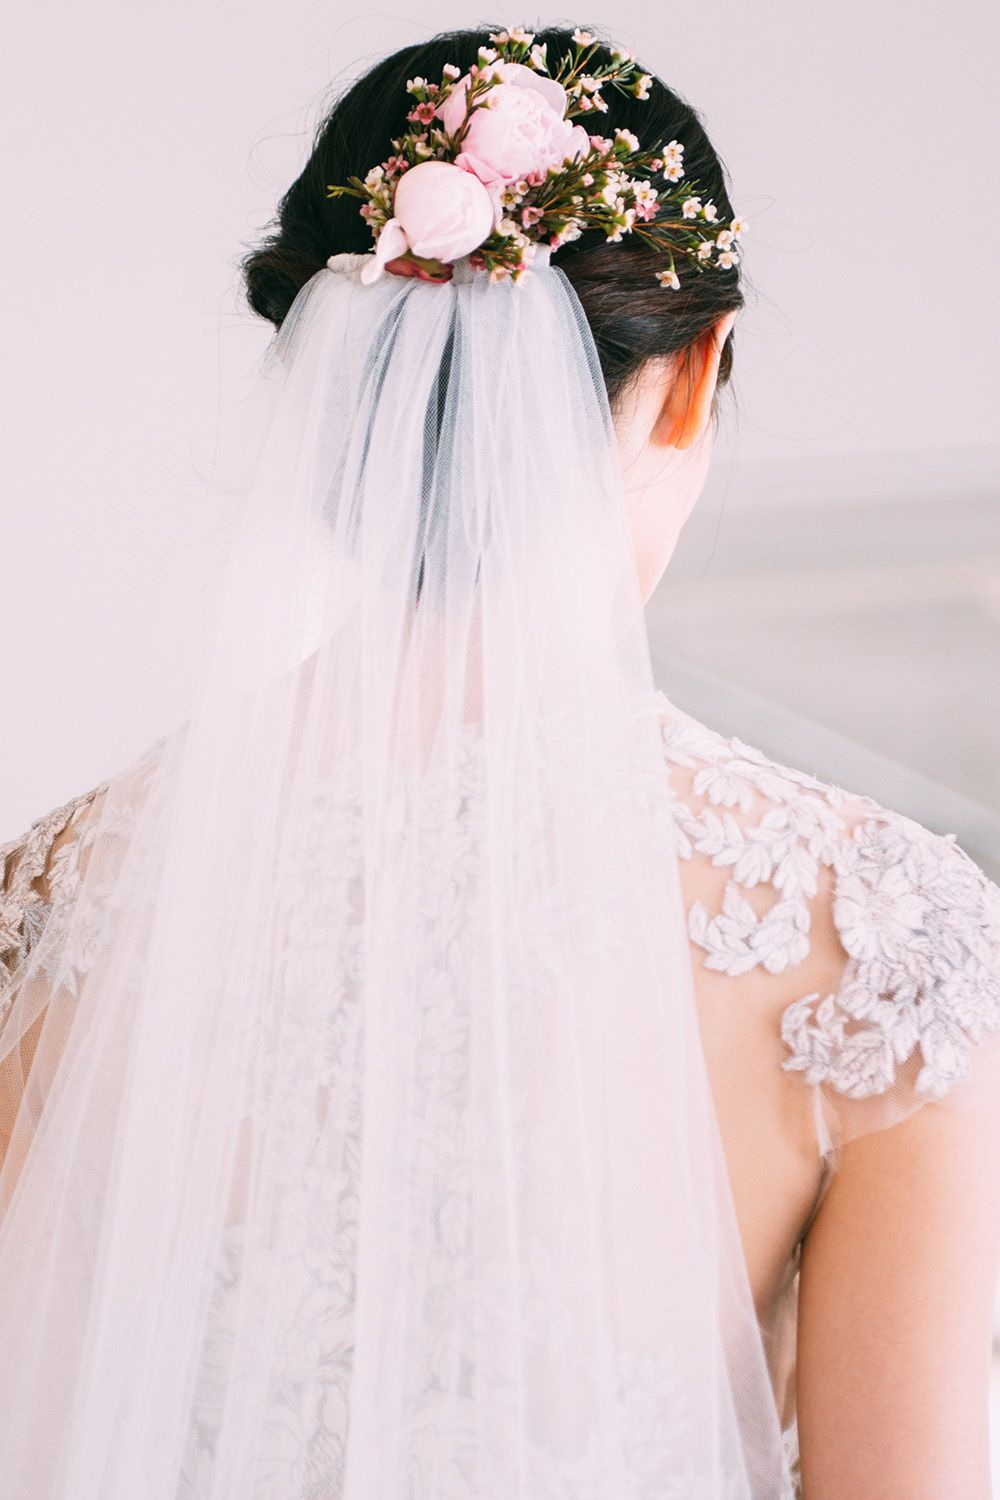 75 Chic Wedding Hairstyles - Glamorous Bridal Hair Ideas and Inspiration